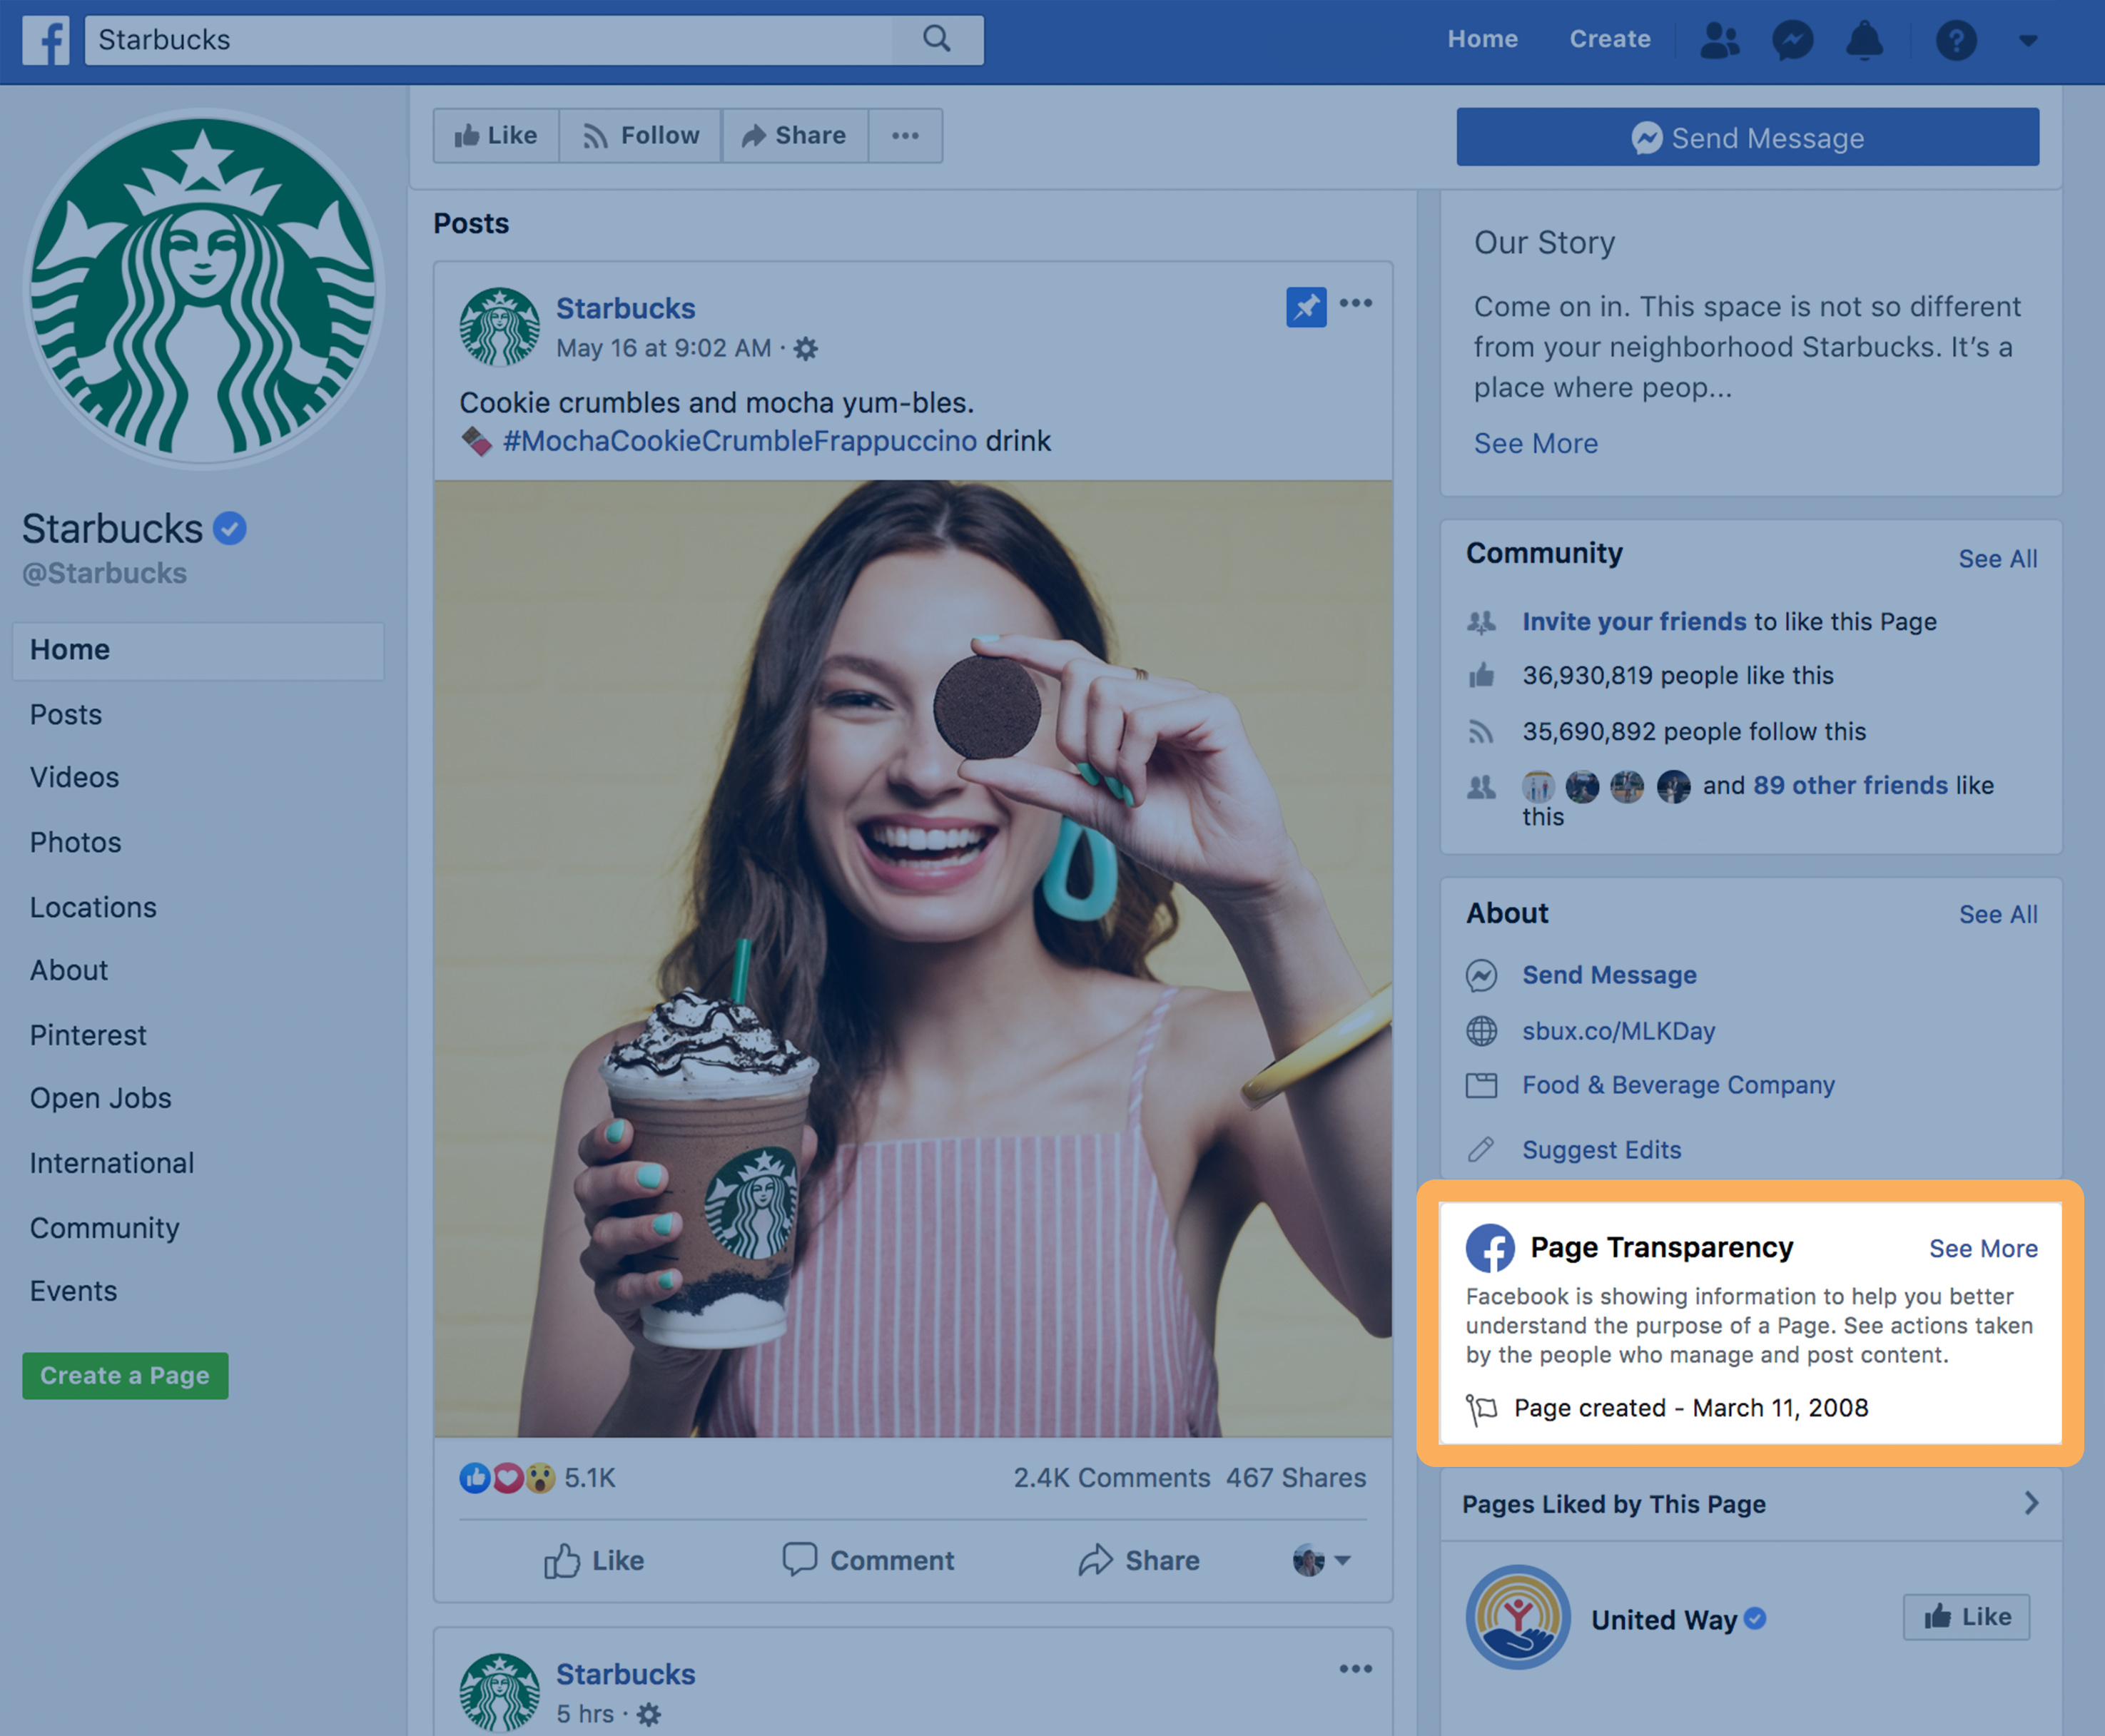 Starbucks Page Transparency Button is on the right rail of Facebook's interface